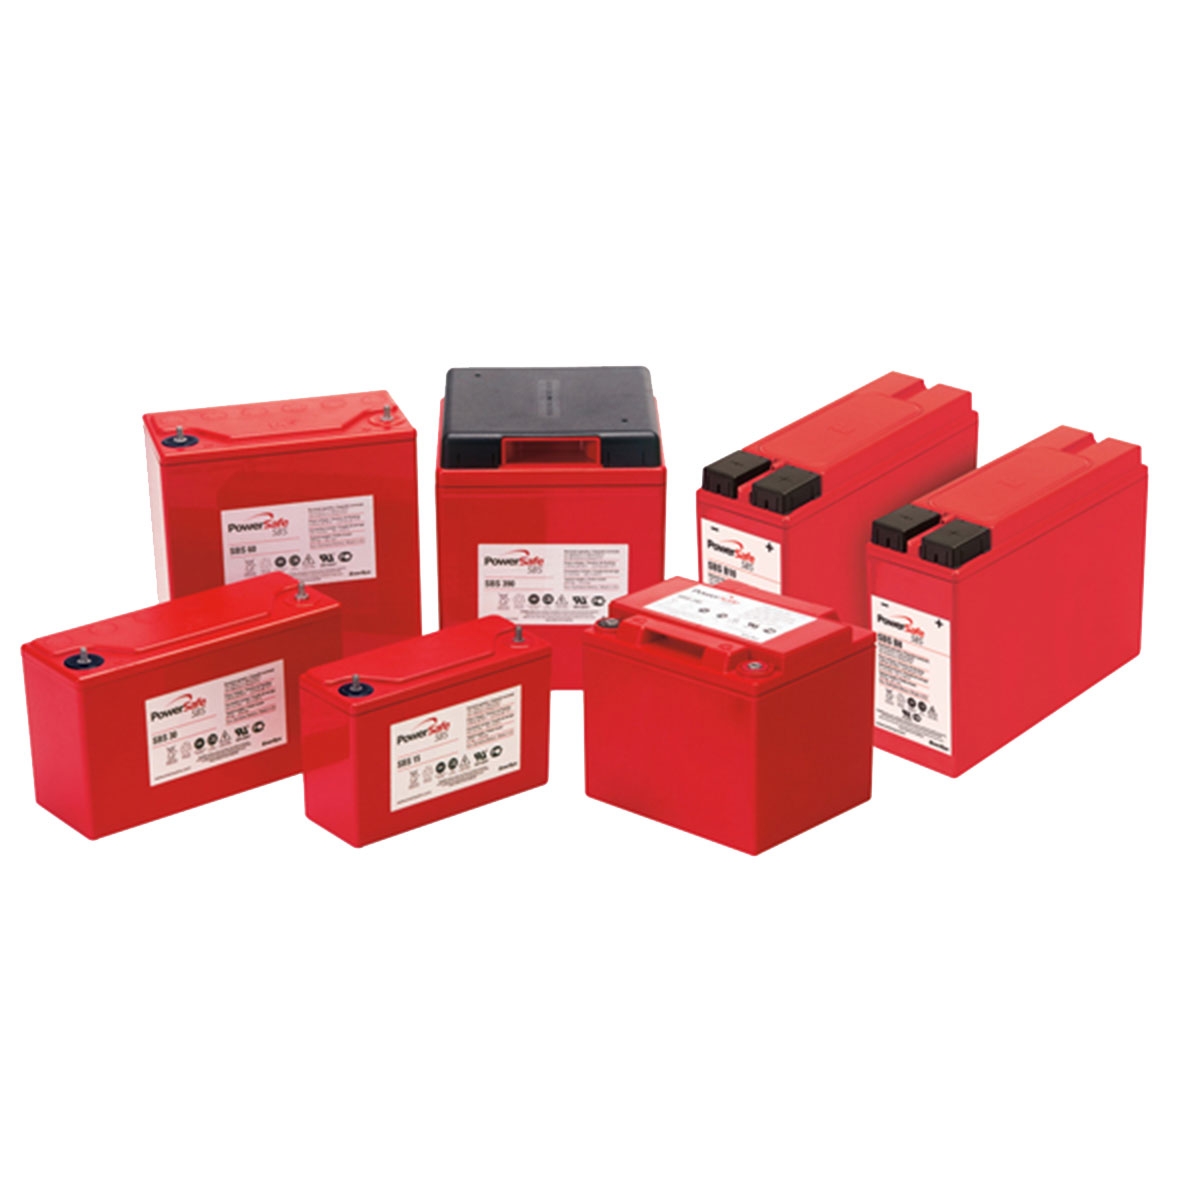 EnerSys-PowerSafe-SBS-batteries.jpg